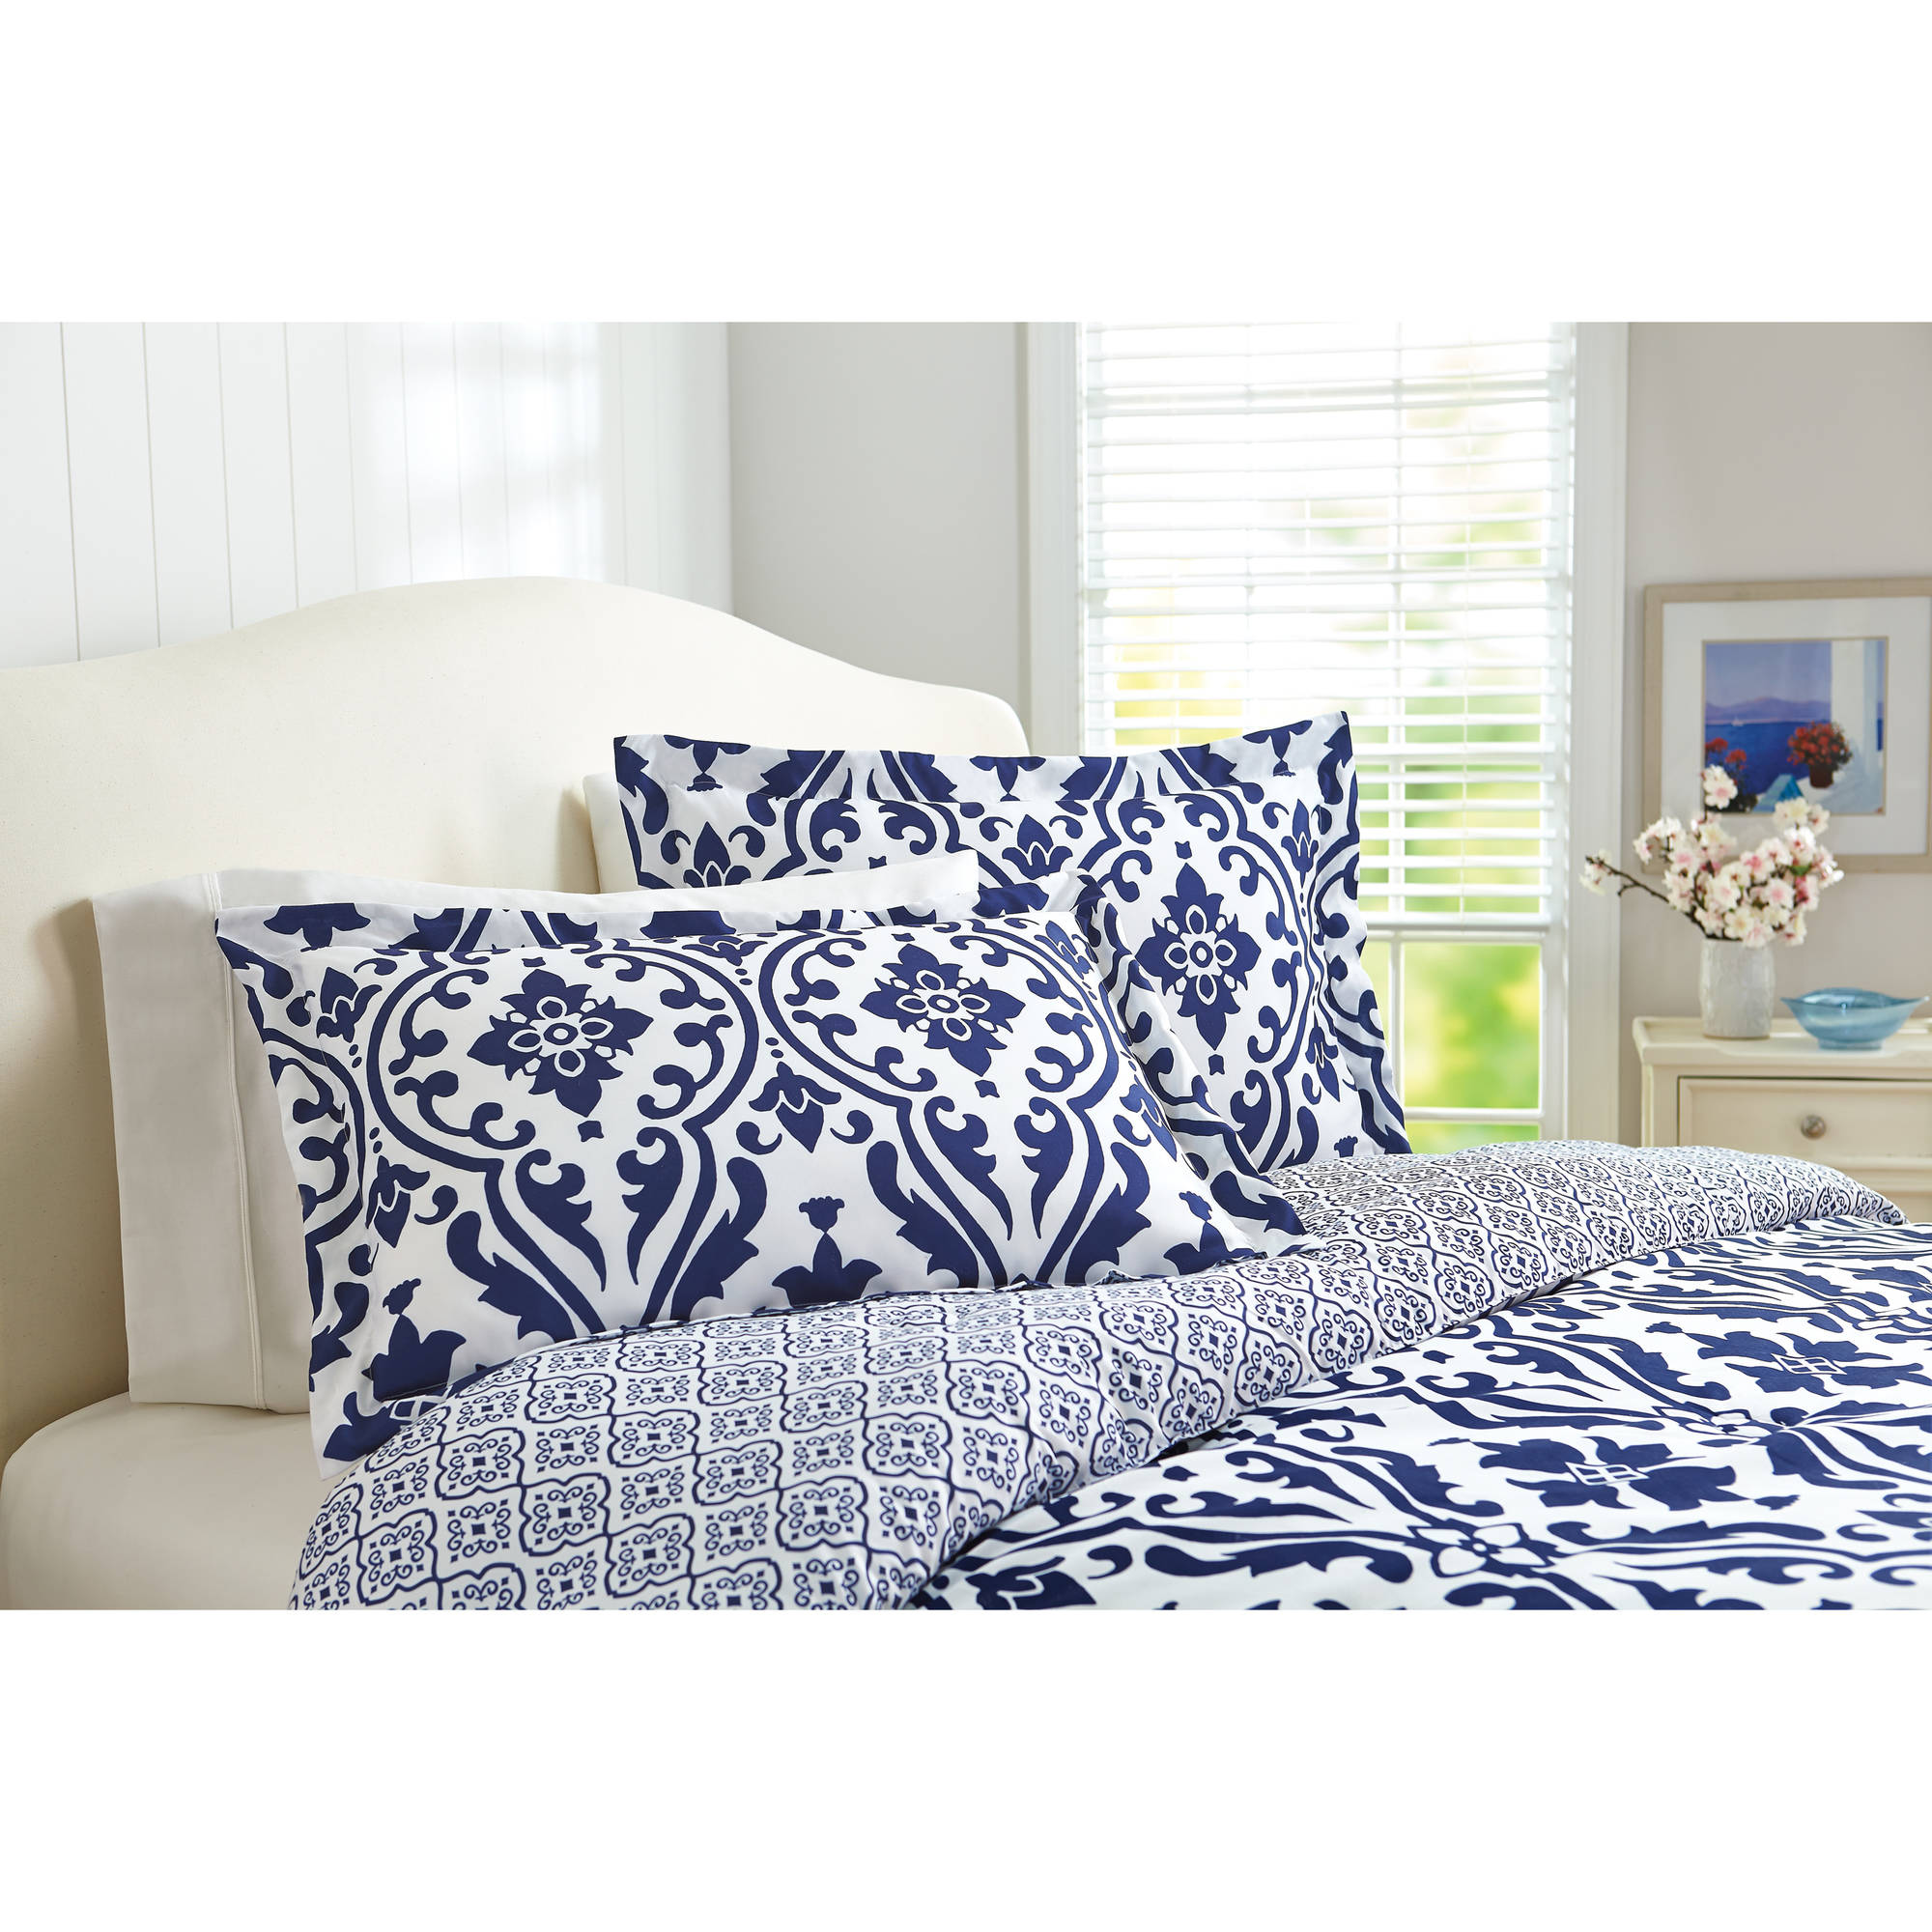 Better Homes and Gardens Indigo Scrollwork 5-Piece Bedding Comforter Set